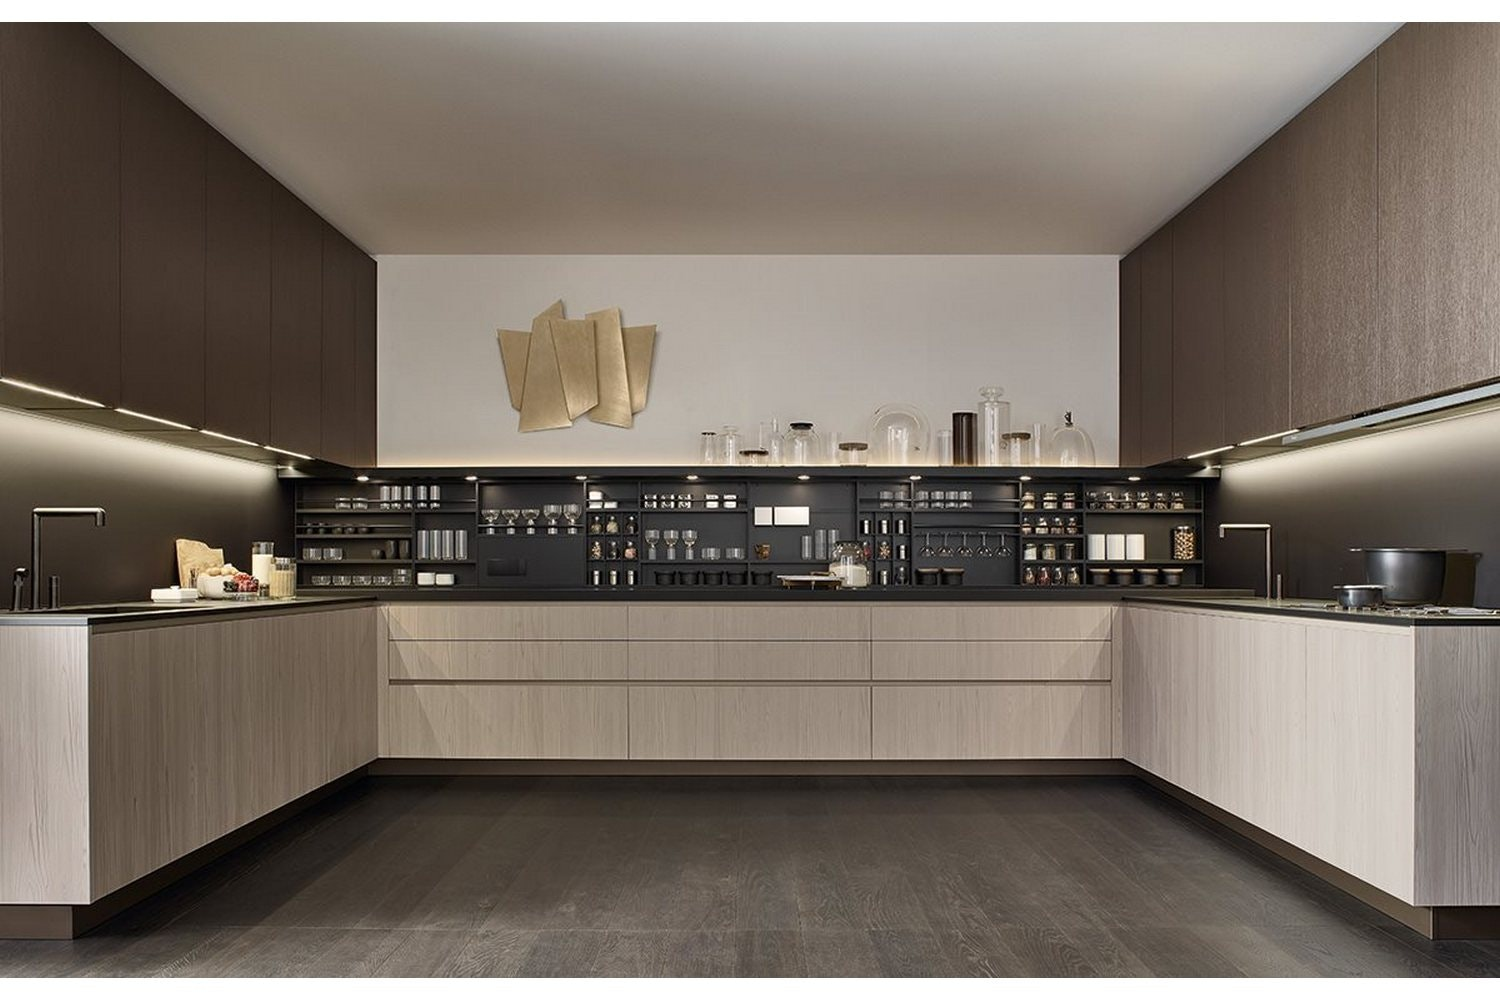 Alea Kitchen by Paolo Piva & R&D Varenna for Poliform